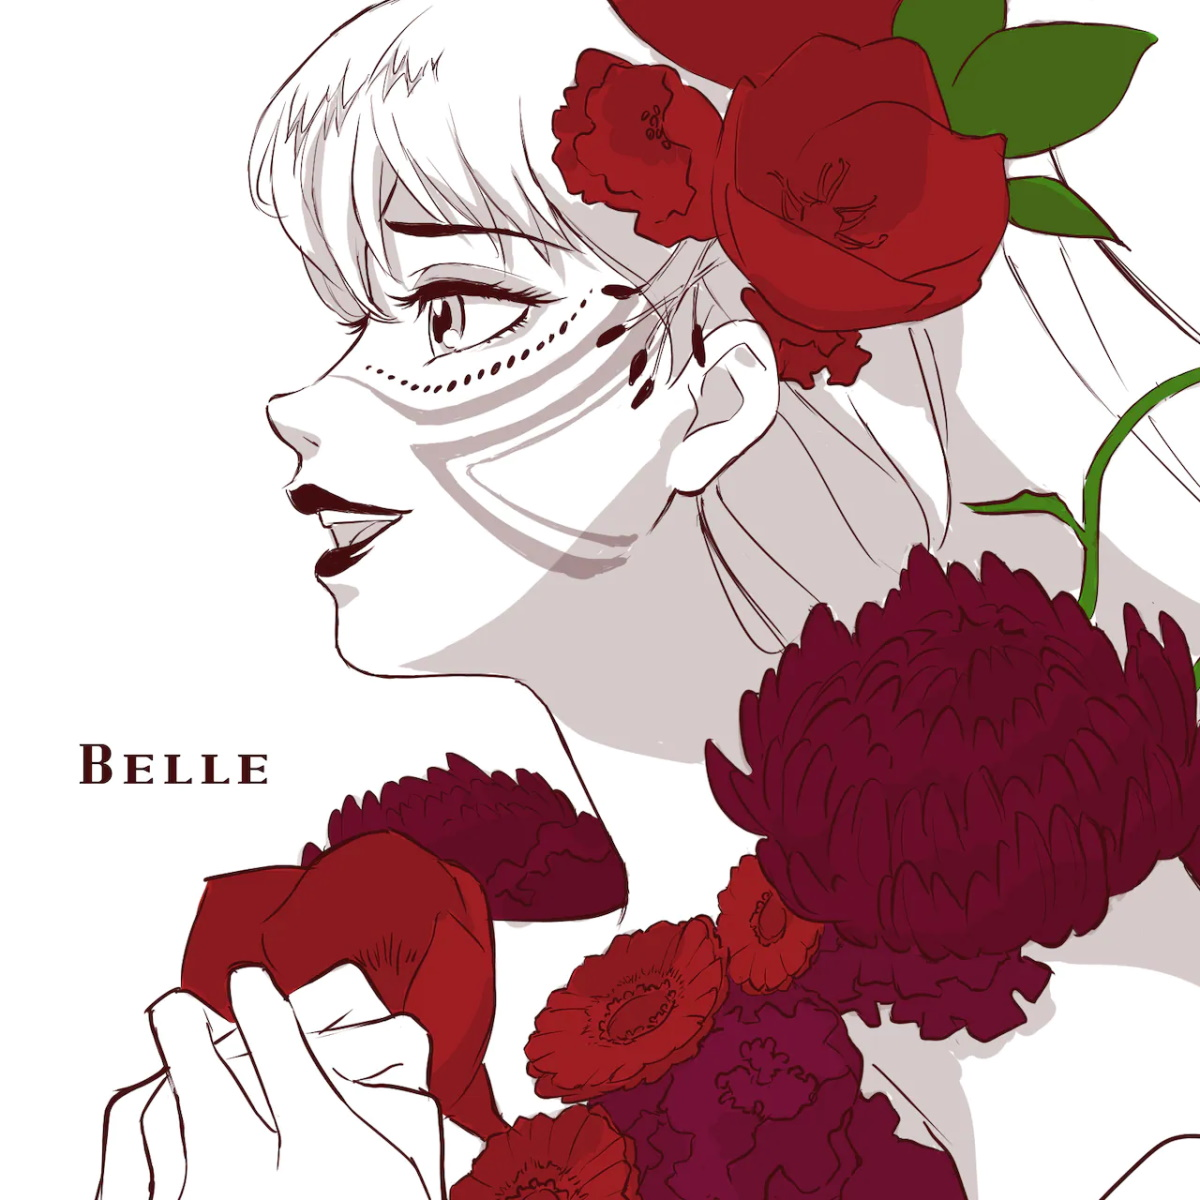 Cover for『Belle - A Million Miles Away Pt.1』from the release『Hanare Banare no Kimi e Part1』